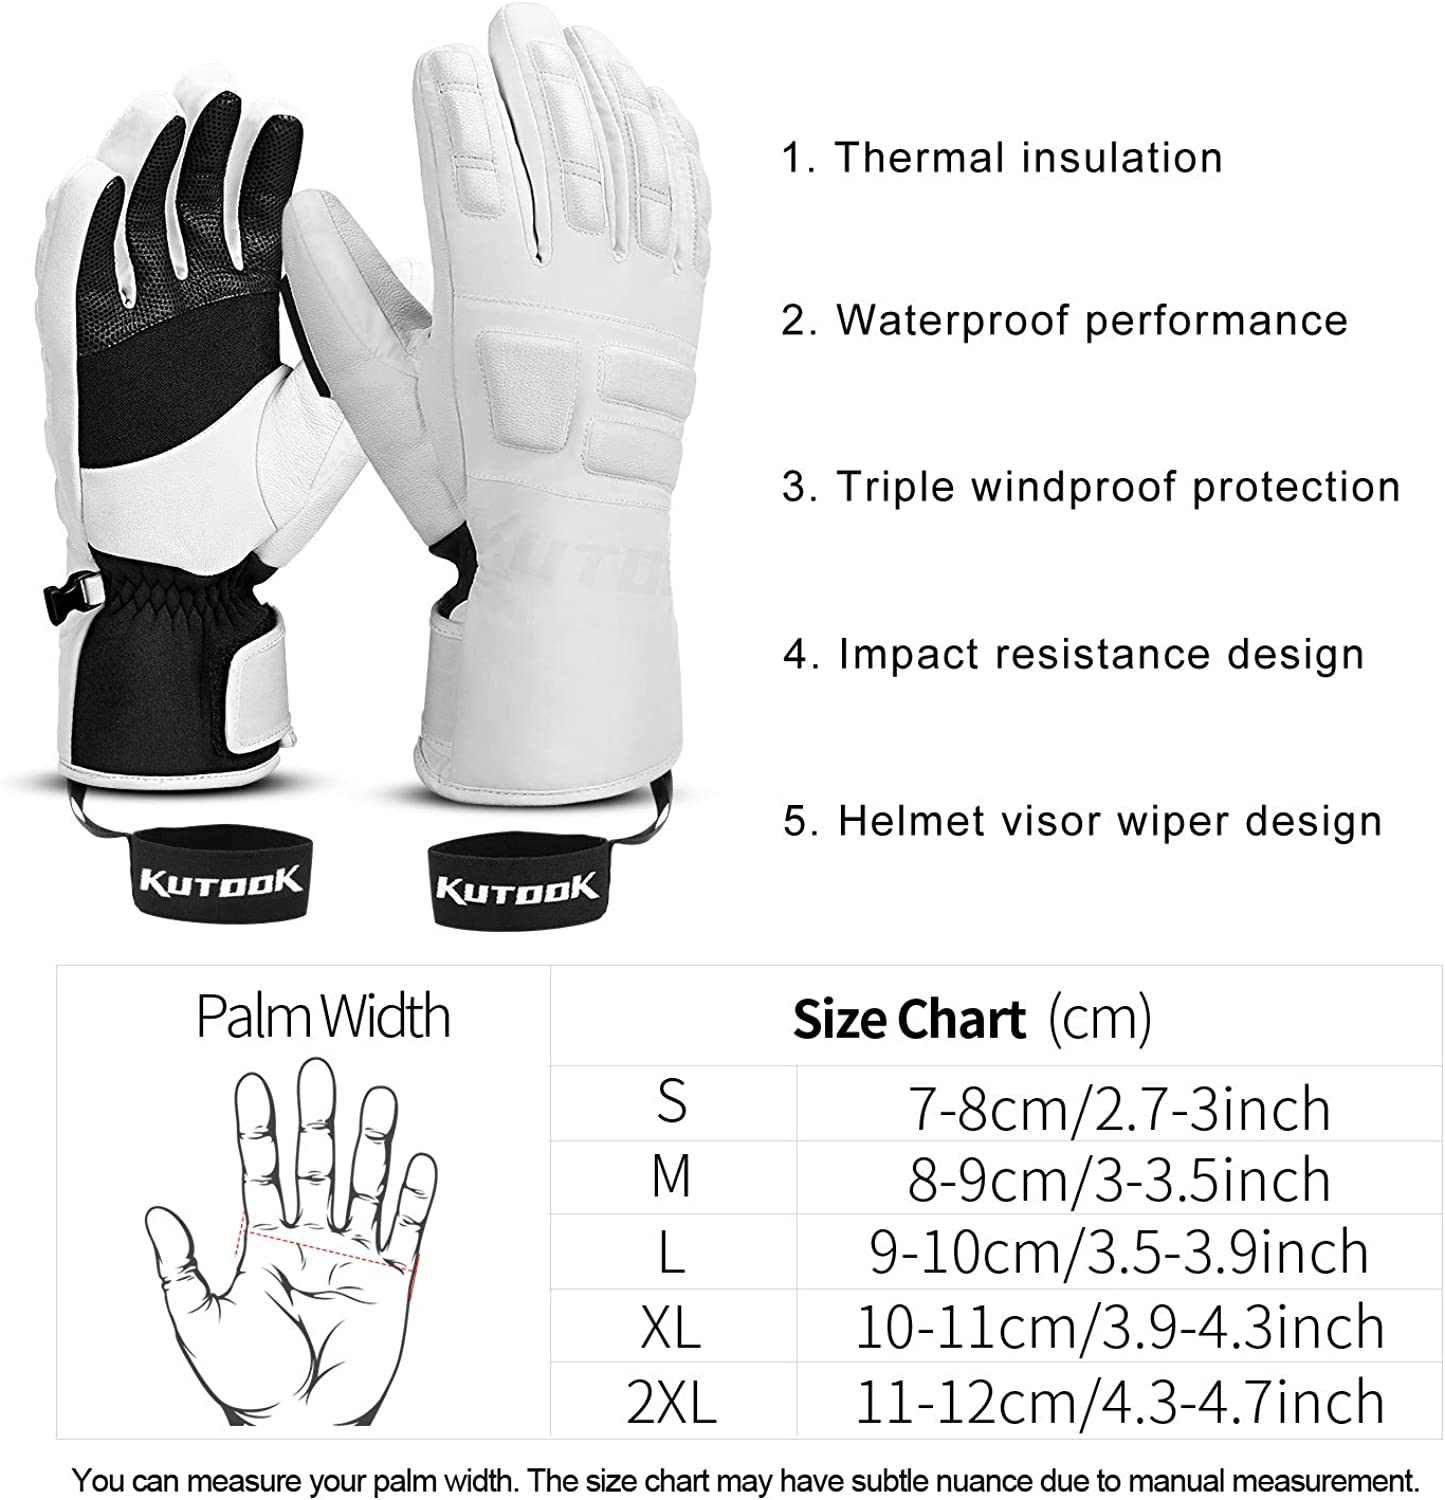 KUTOOK Snow Gloves Men with HIPORA Waterproof Membrane Goatskin Palm 3m Thinsulate